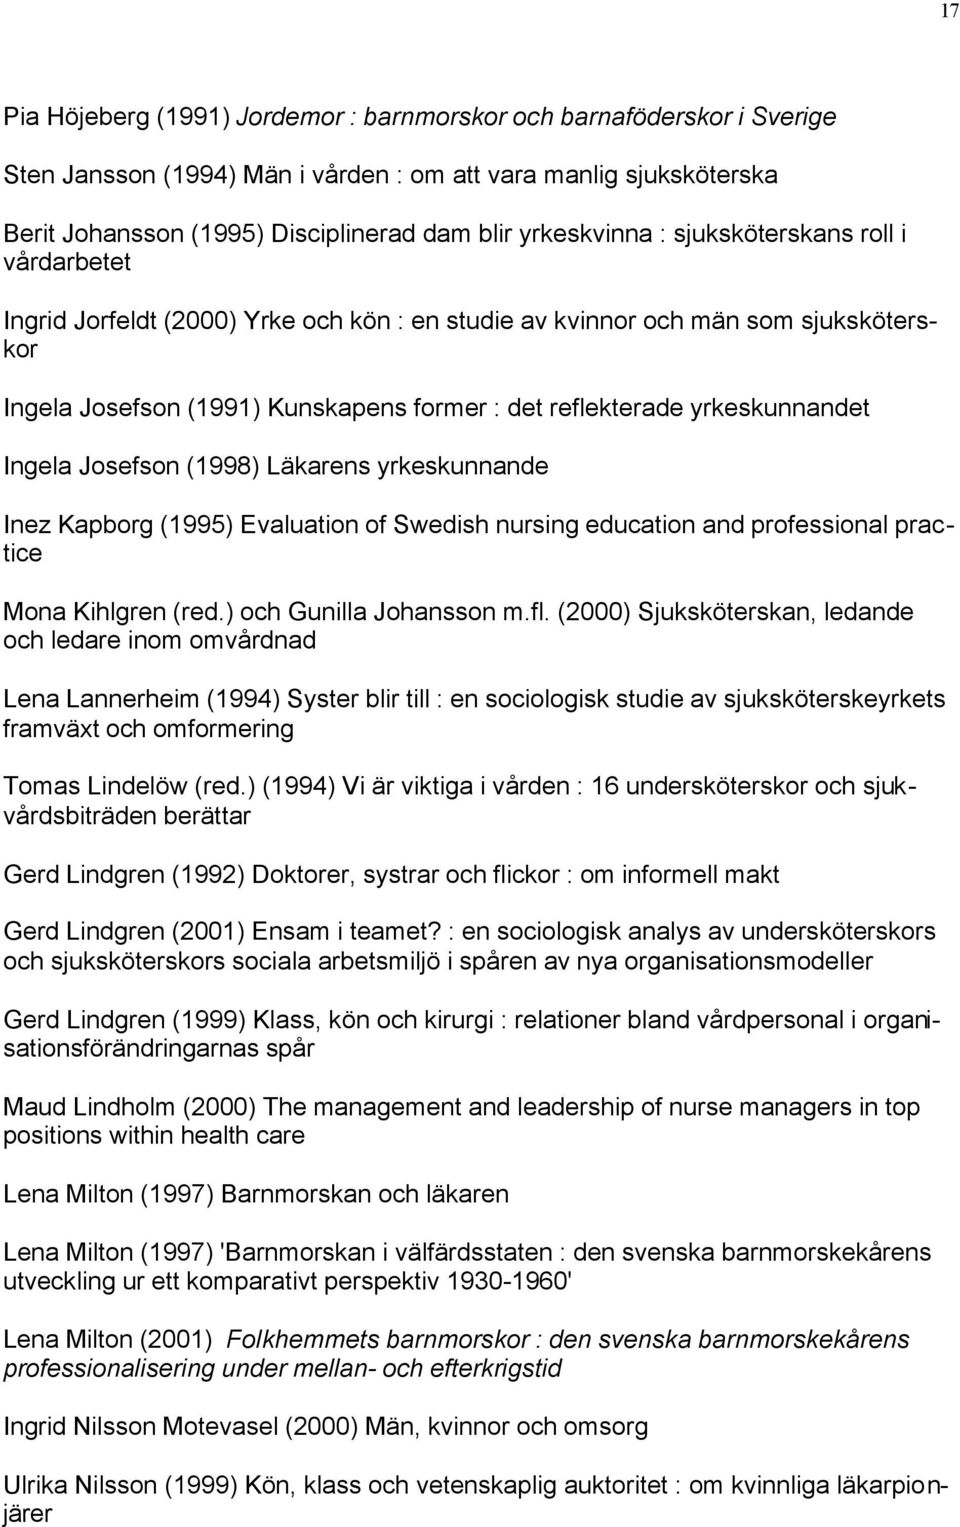 yrkeskunnandet Ingela Josefson (1998) Läkarens yrkeskunnande Inez Kapborg (1995) Evaluation of Swedish nursing education and professional practice Mona Kihlgren (red.) och Gunilla Johansson m.fl.